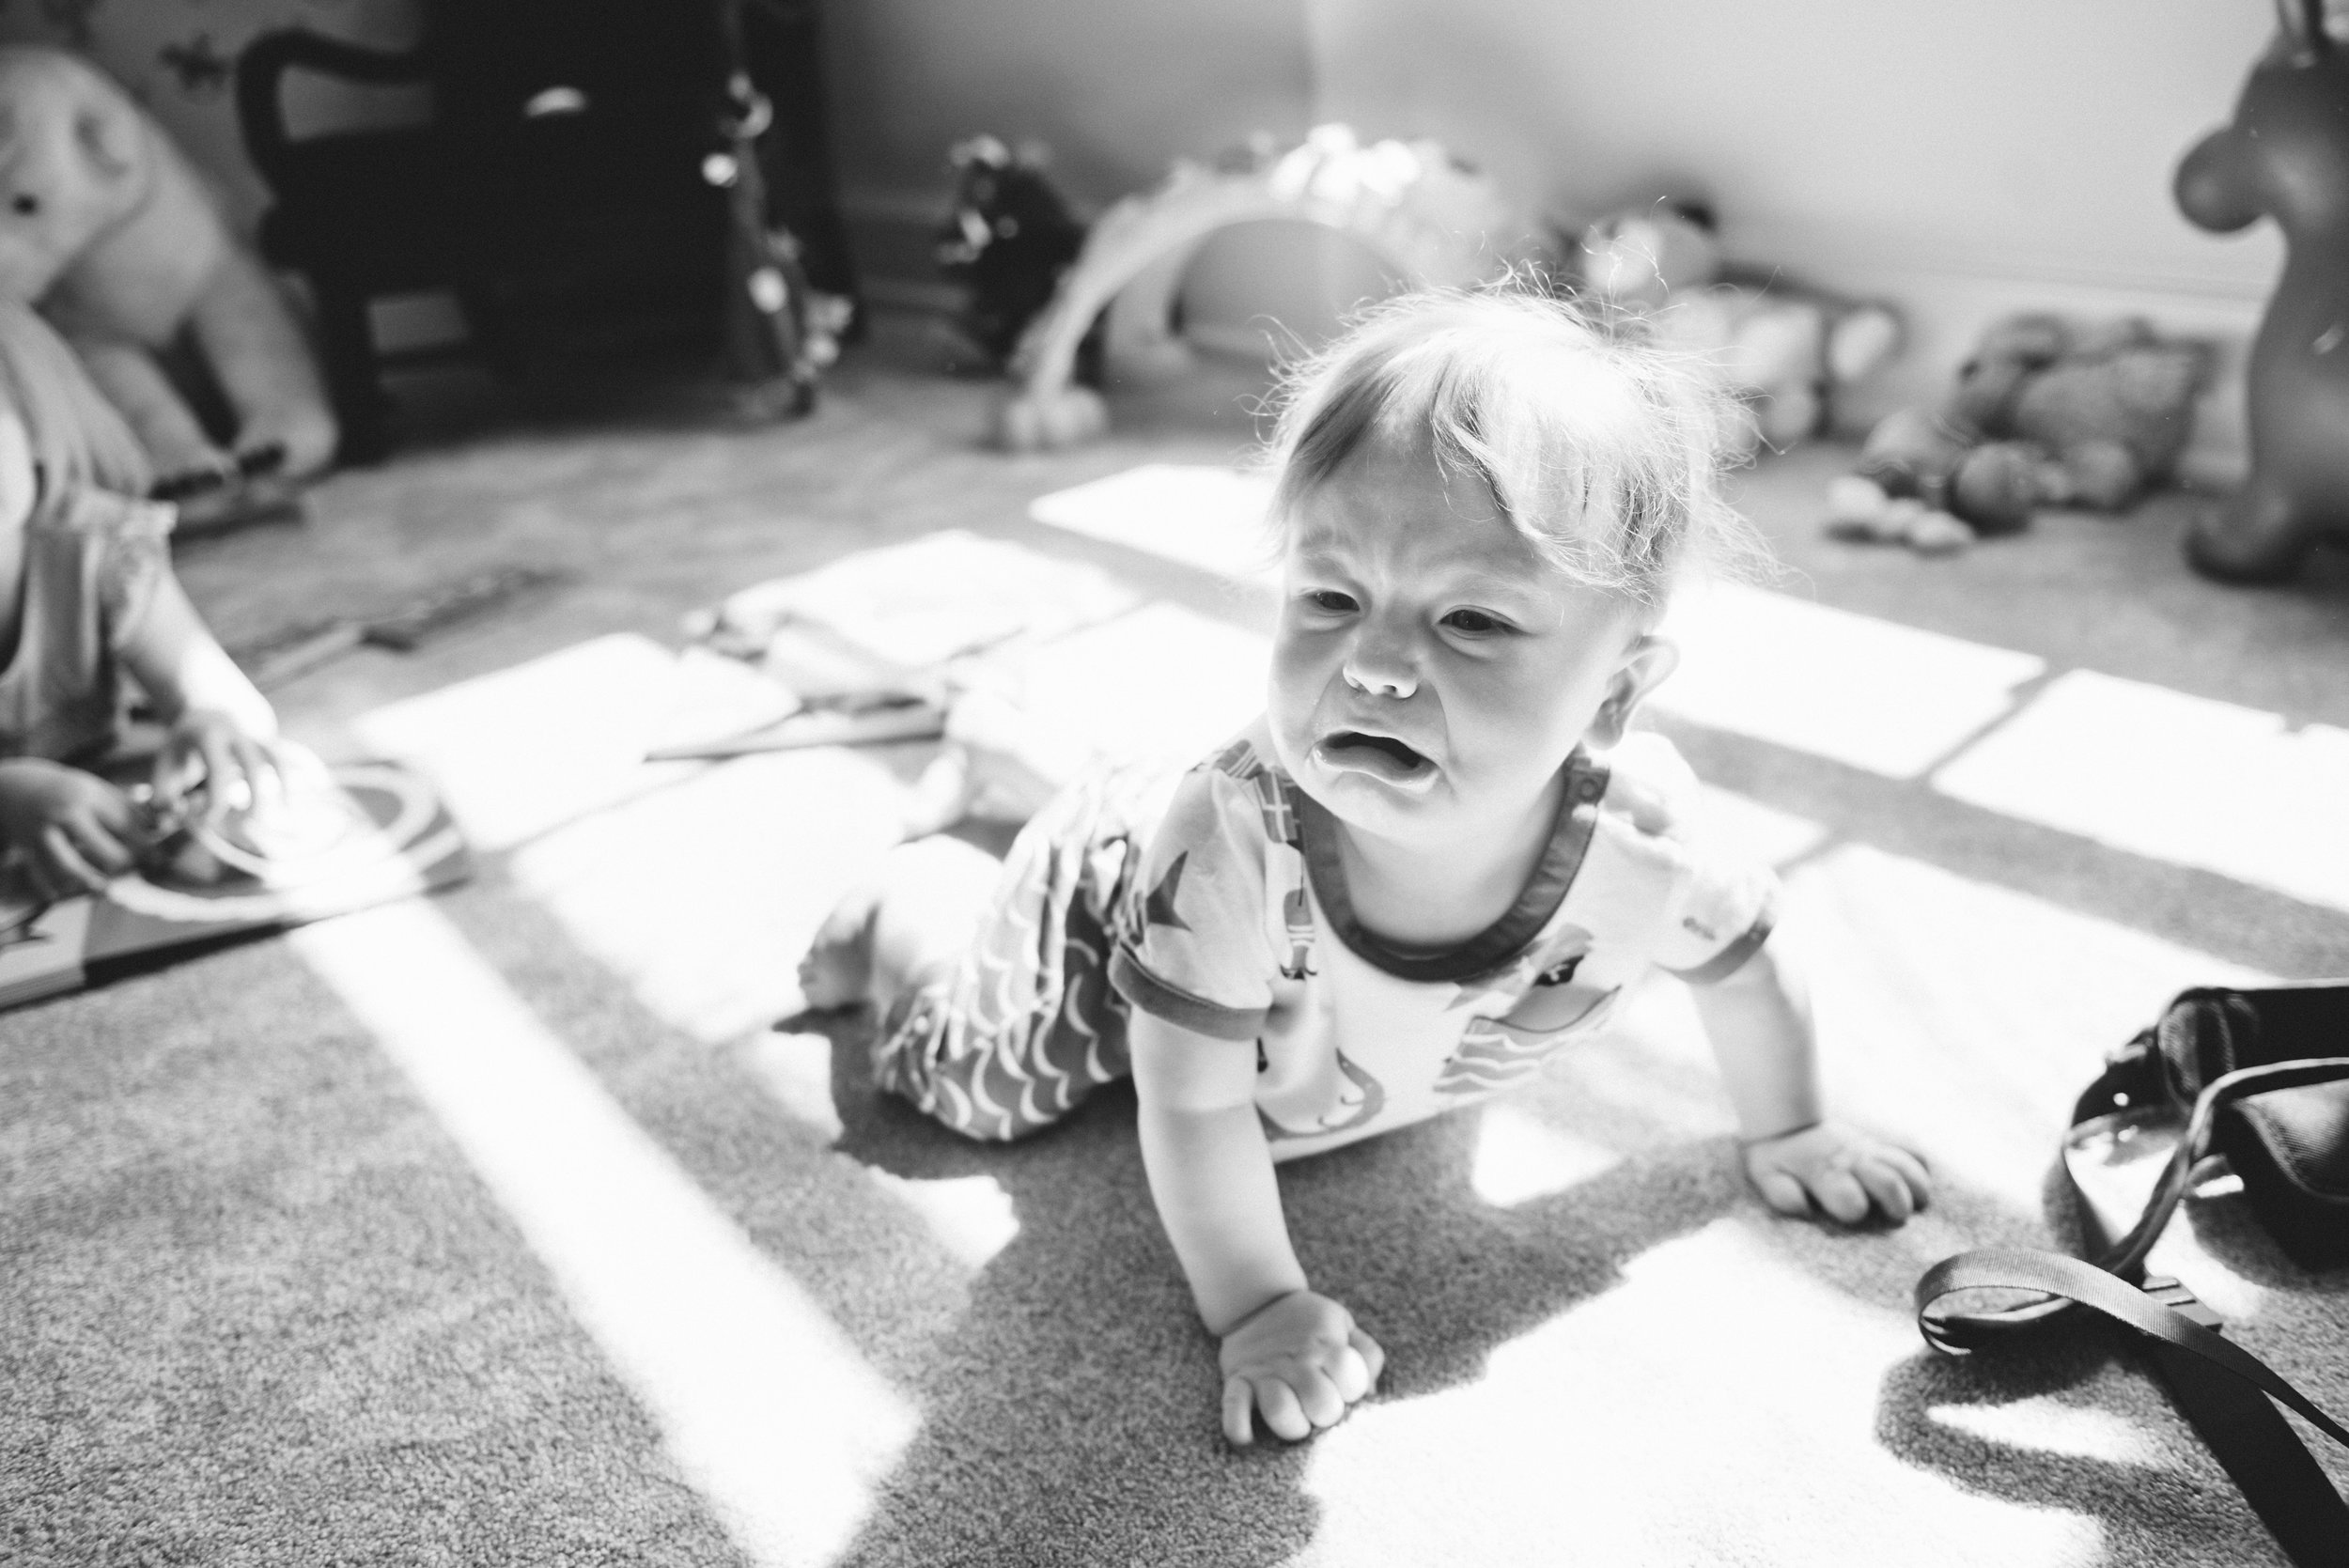 day in the life session - The ultimate at home session. A 3 hour documentary style photoshoot, following your families routine and capturing those incredible 'everyday moments' that are often missed from family albums.2019 prices just £350